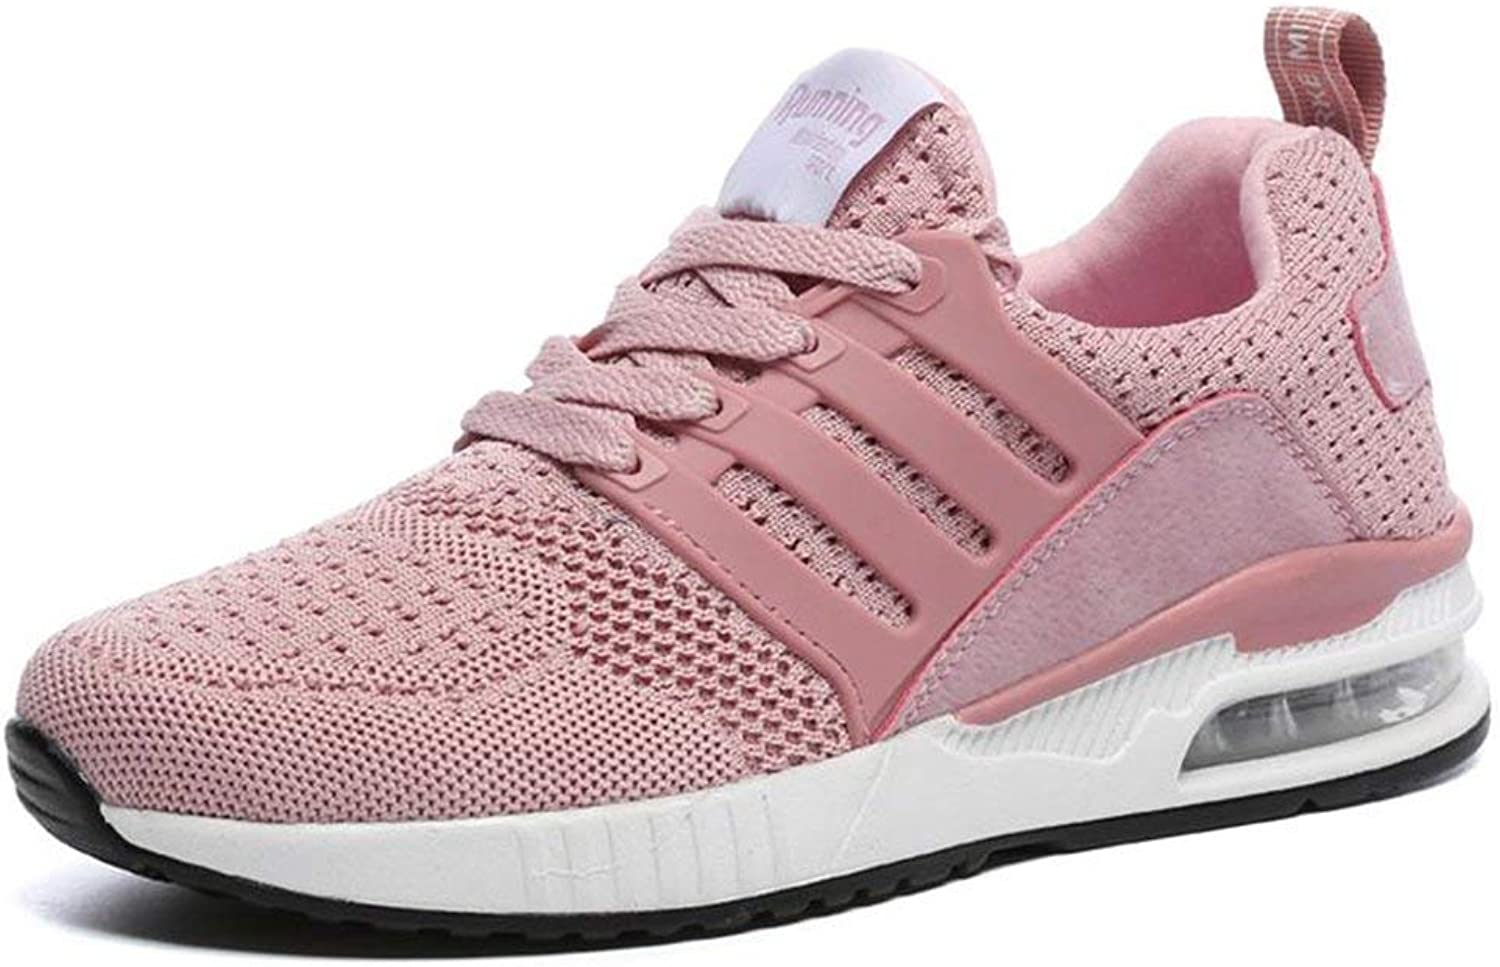 ZHRUI Men Sneakers Breath Jogging for Male Female Sports Running shoes Fly Weave Unisex Adults Trainers Walking Sport Gym shoes (color   01 Pink, Size   5.5=39 EU)